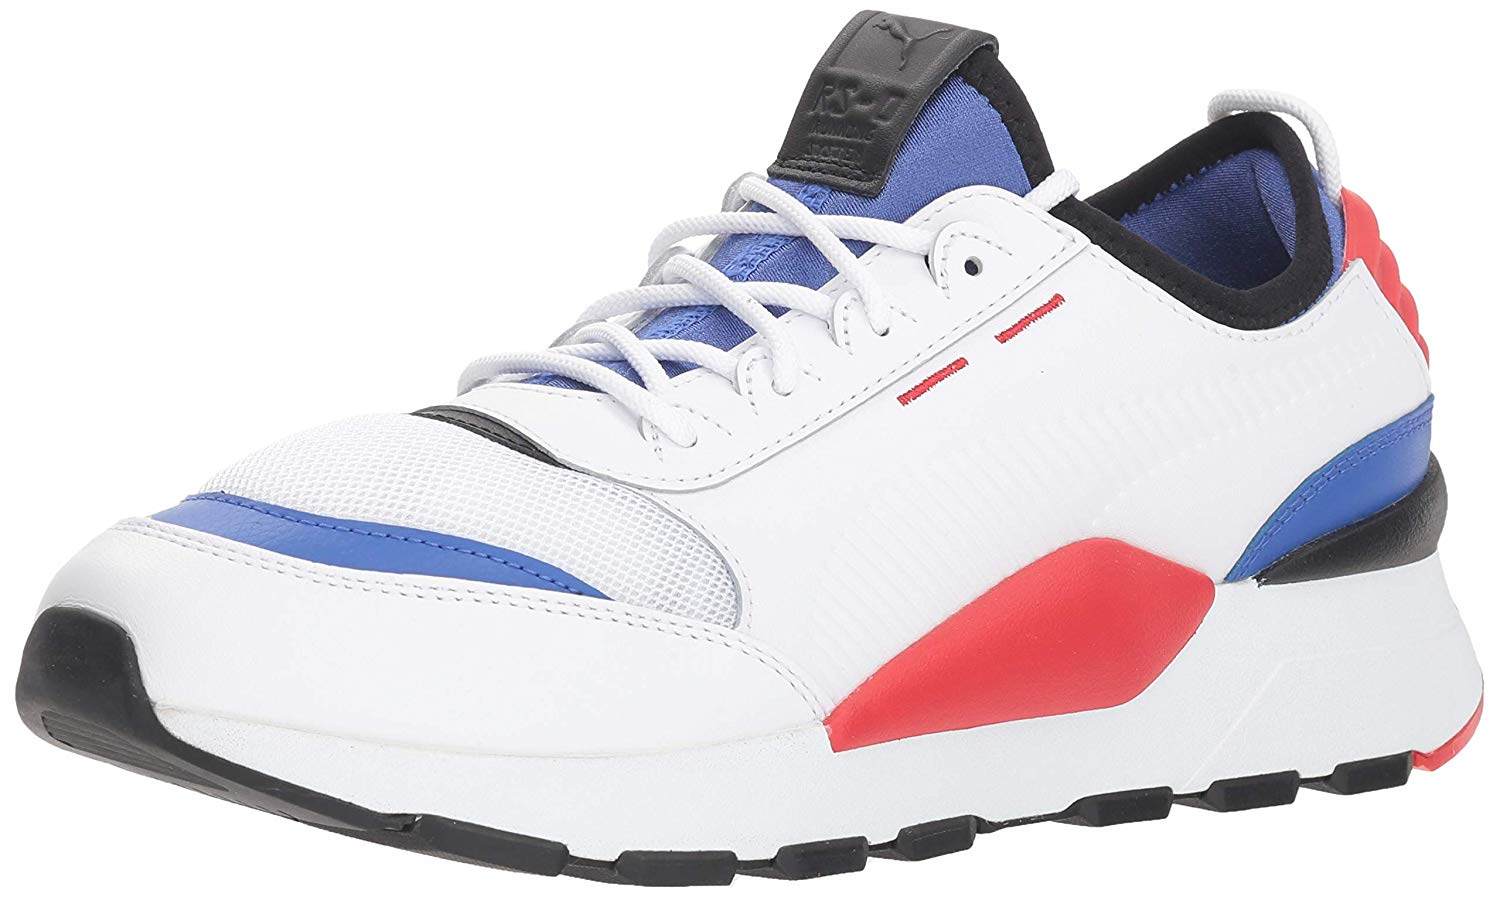 Puma RS-0 Sound Reviewed for